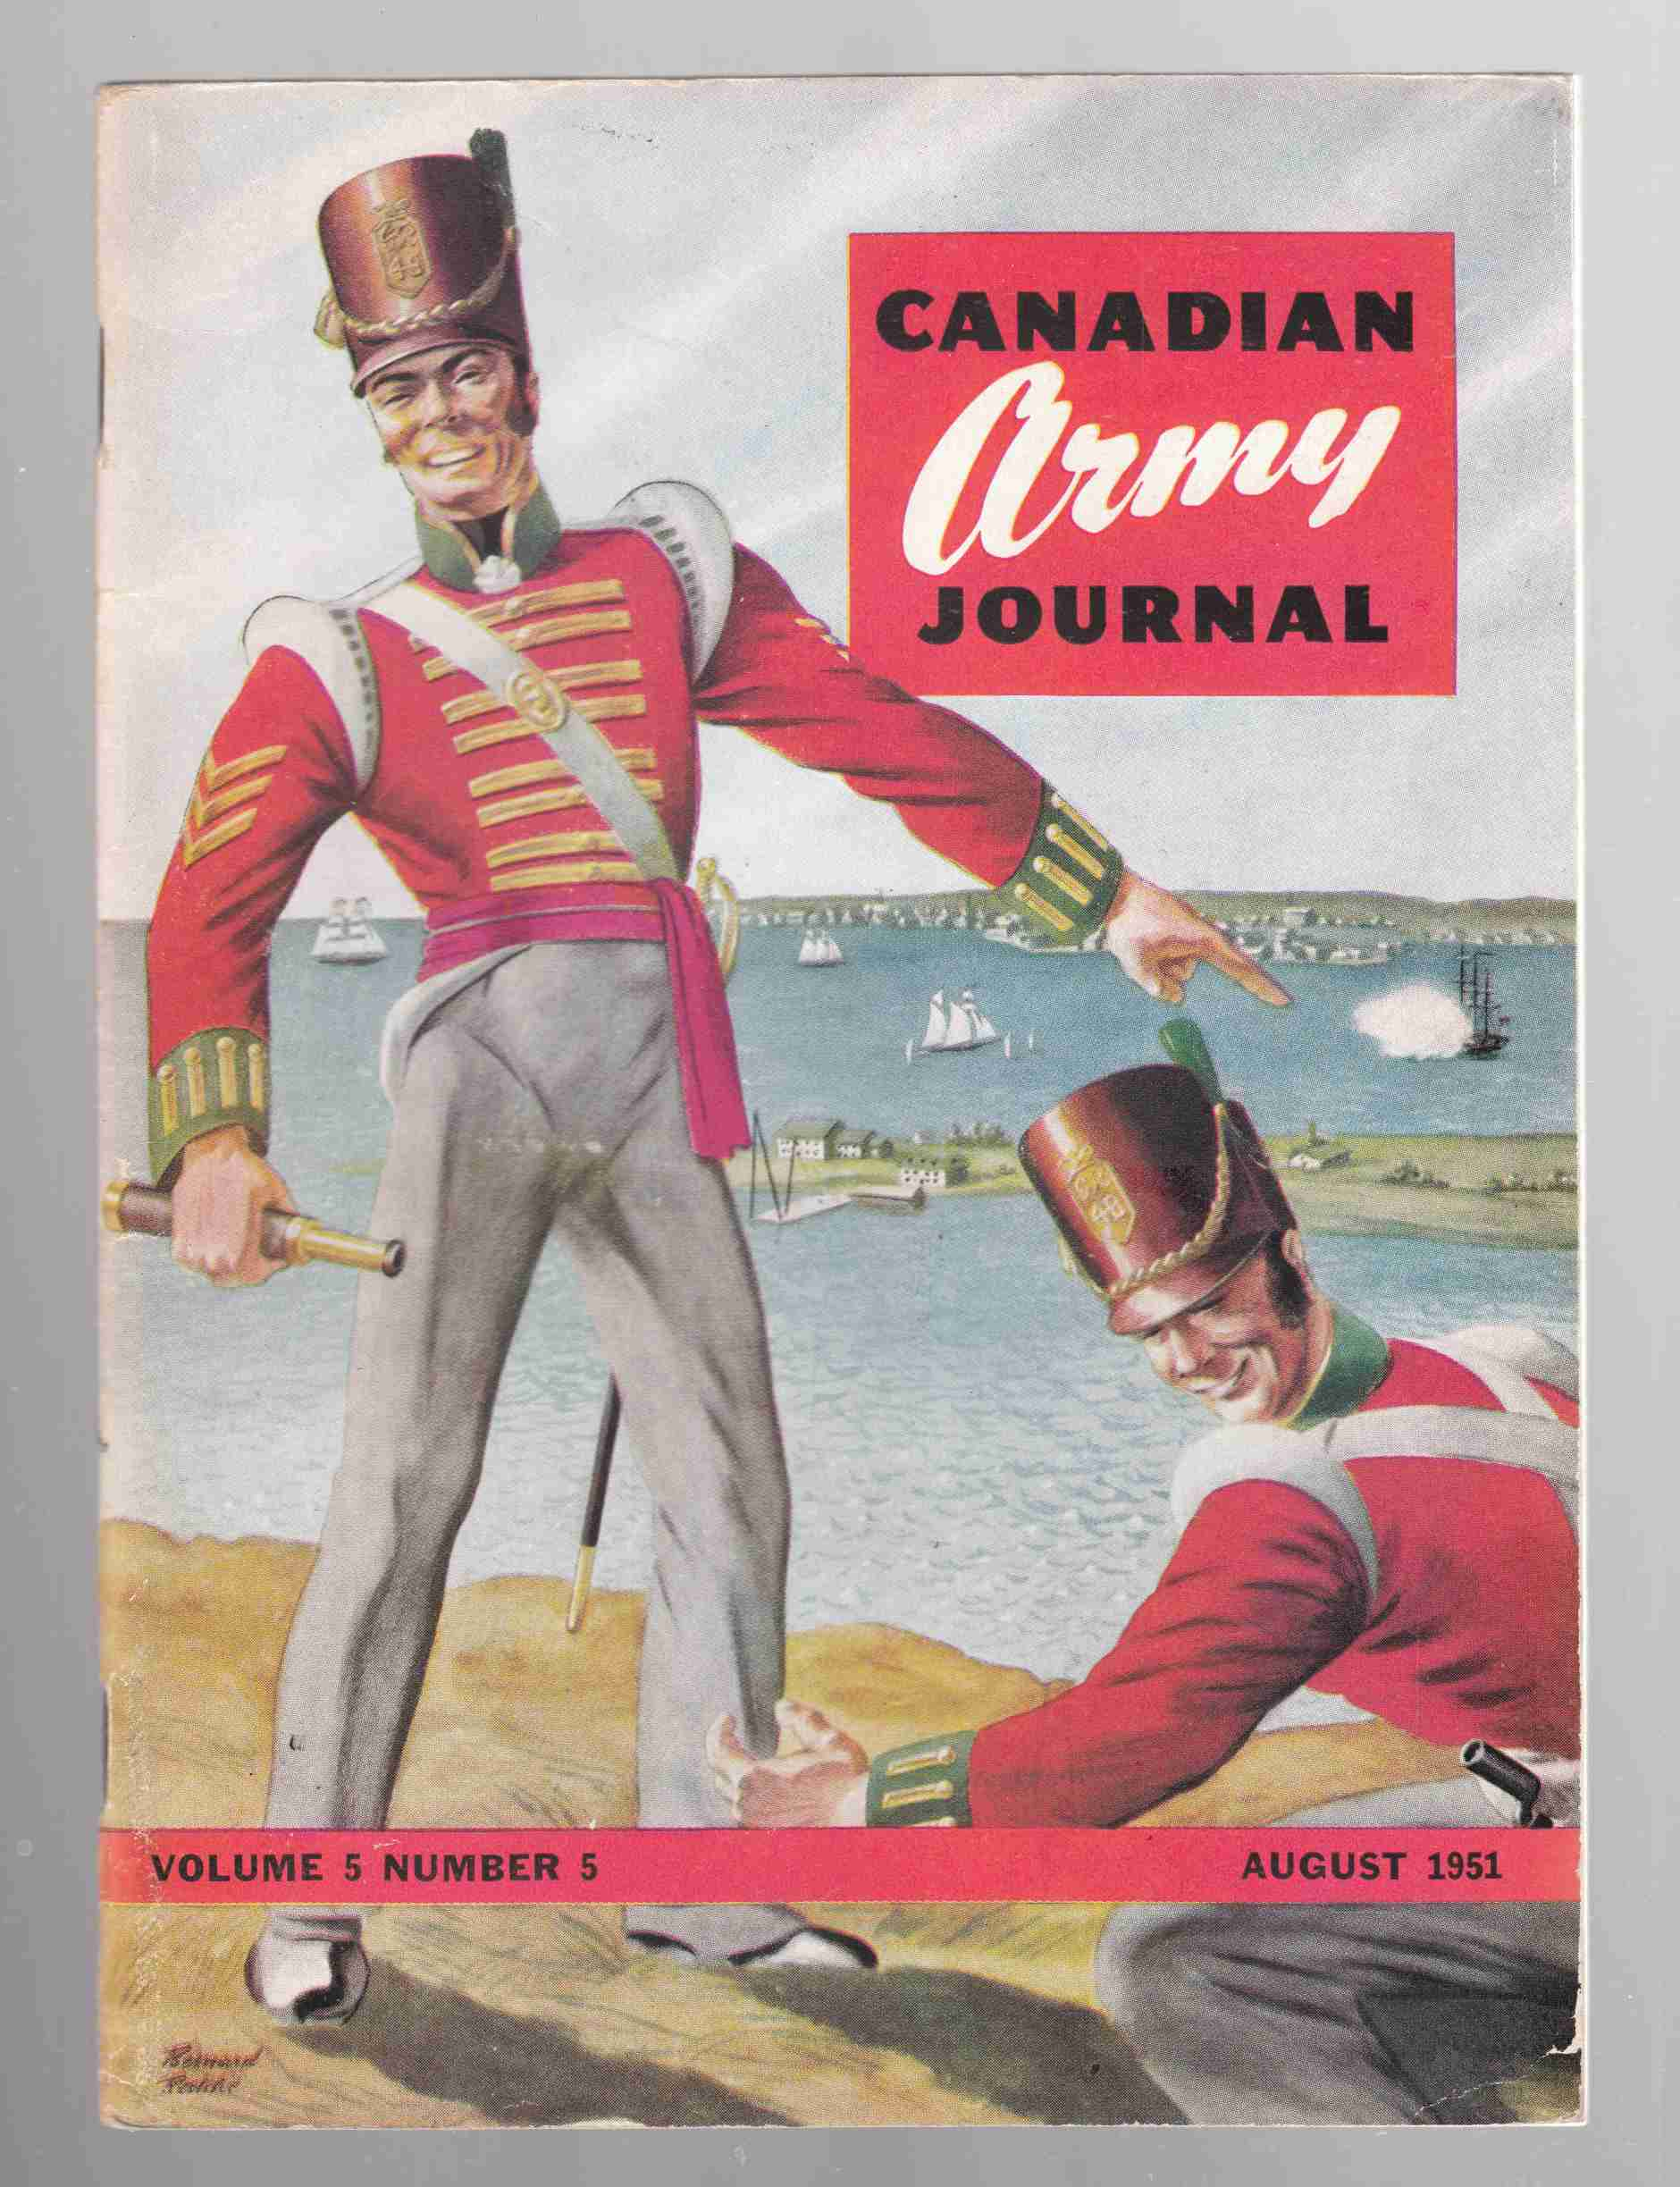 Image for Canadian Army Journal Volume 5 Number 5 August 1951